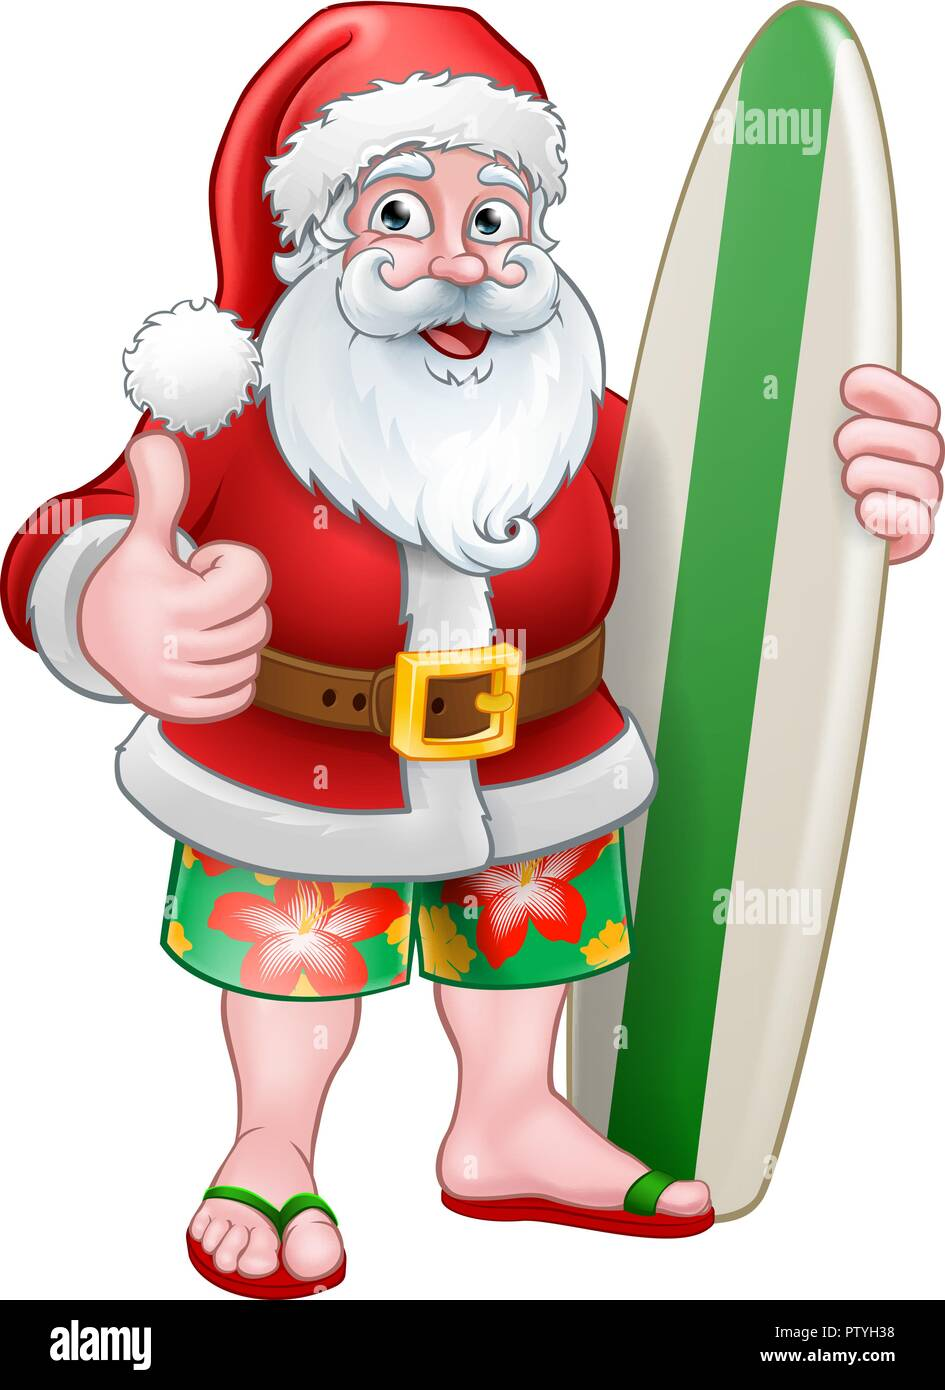 christmas santa claus surf cartoon stock vector image art alamy https www alamy com christmas santa claus surf cartoon image221882284 html